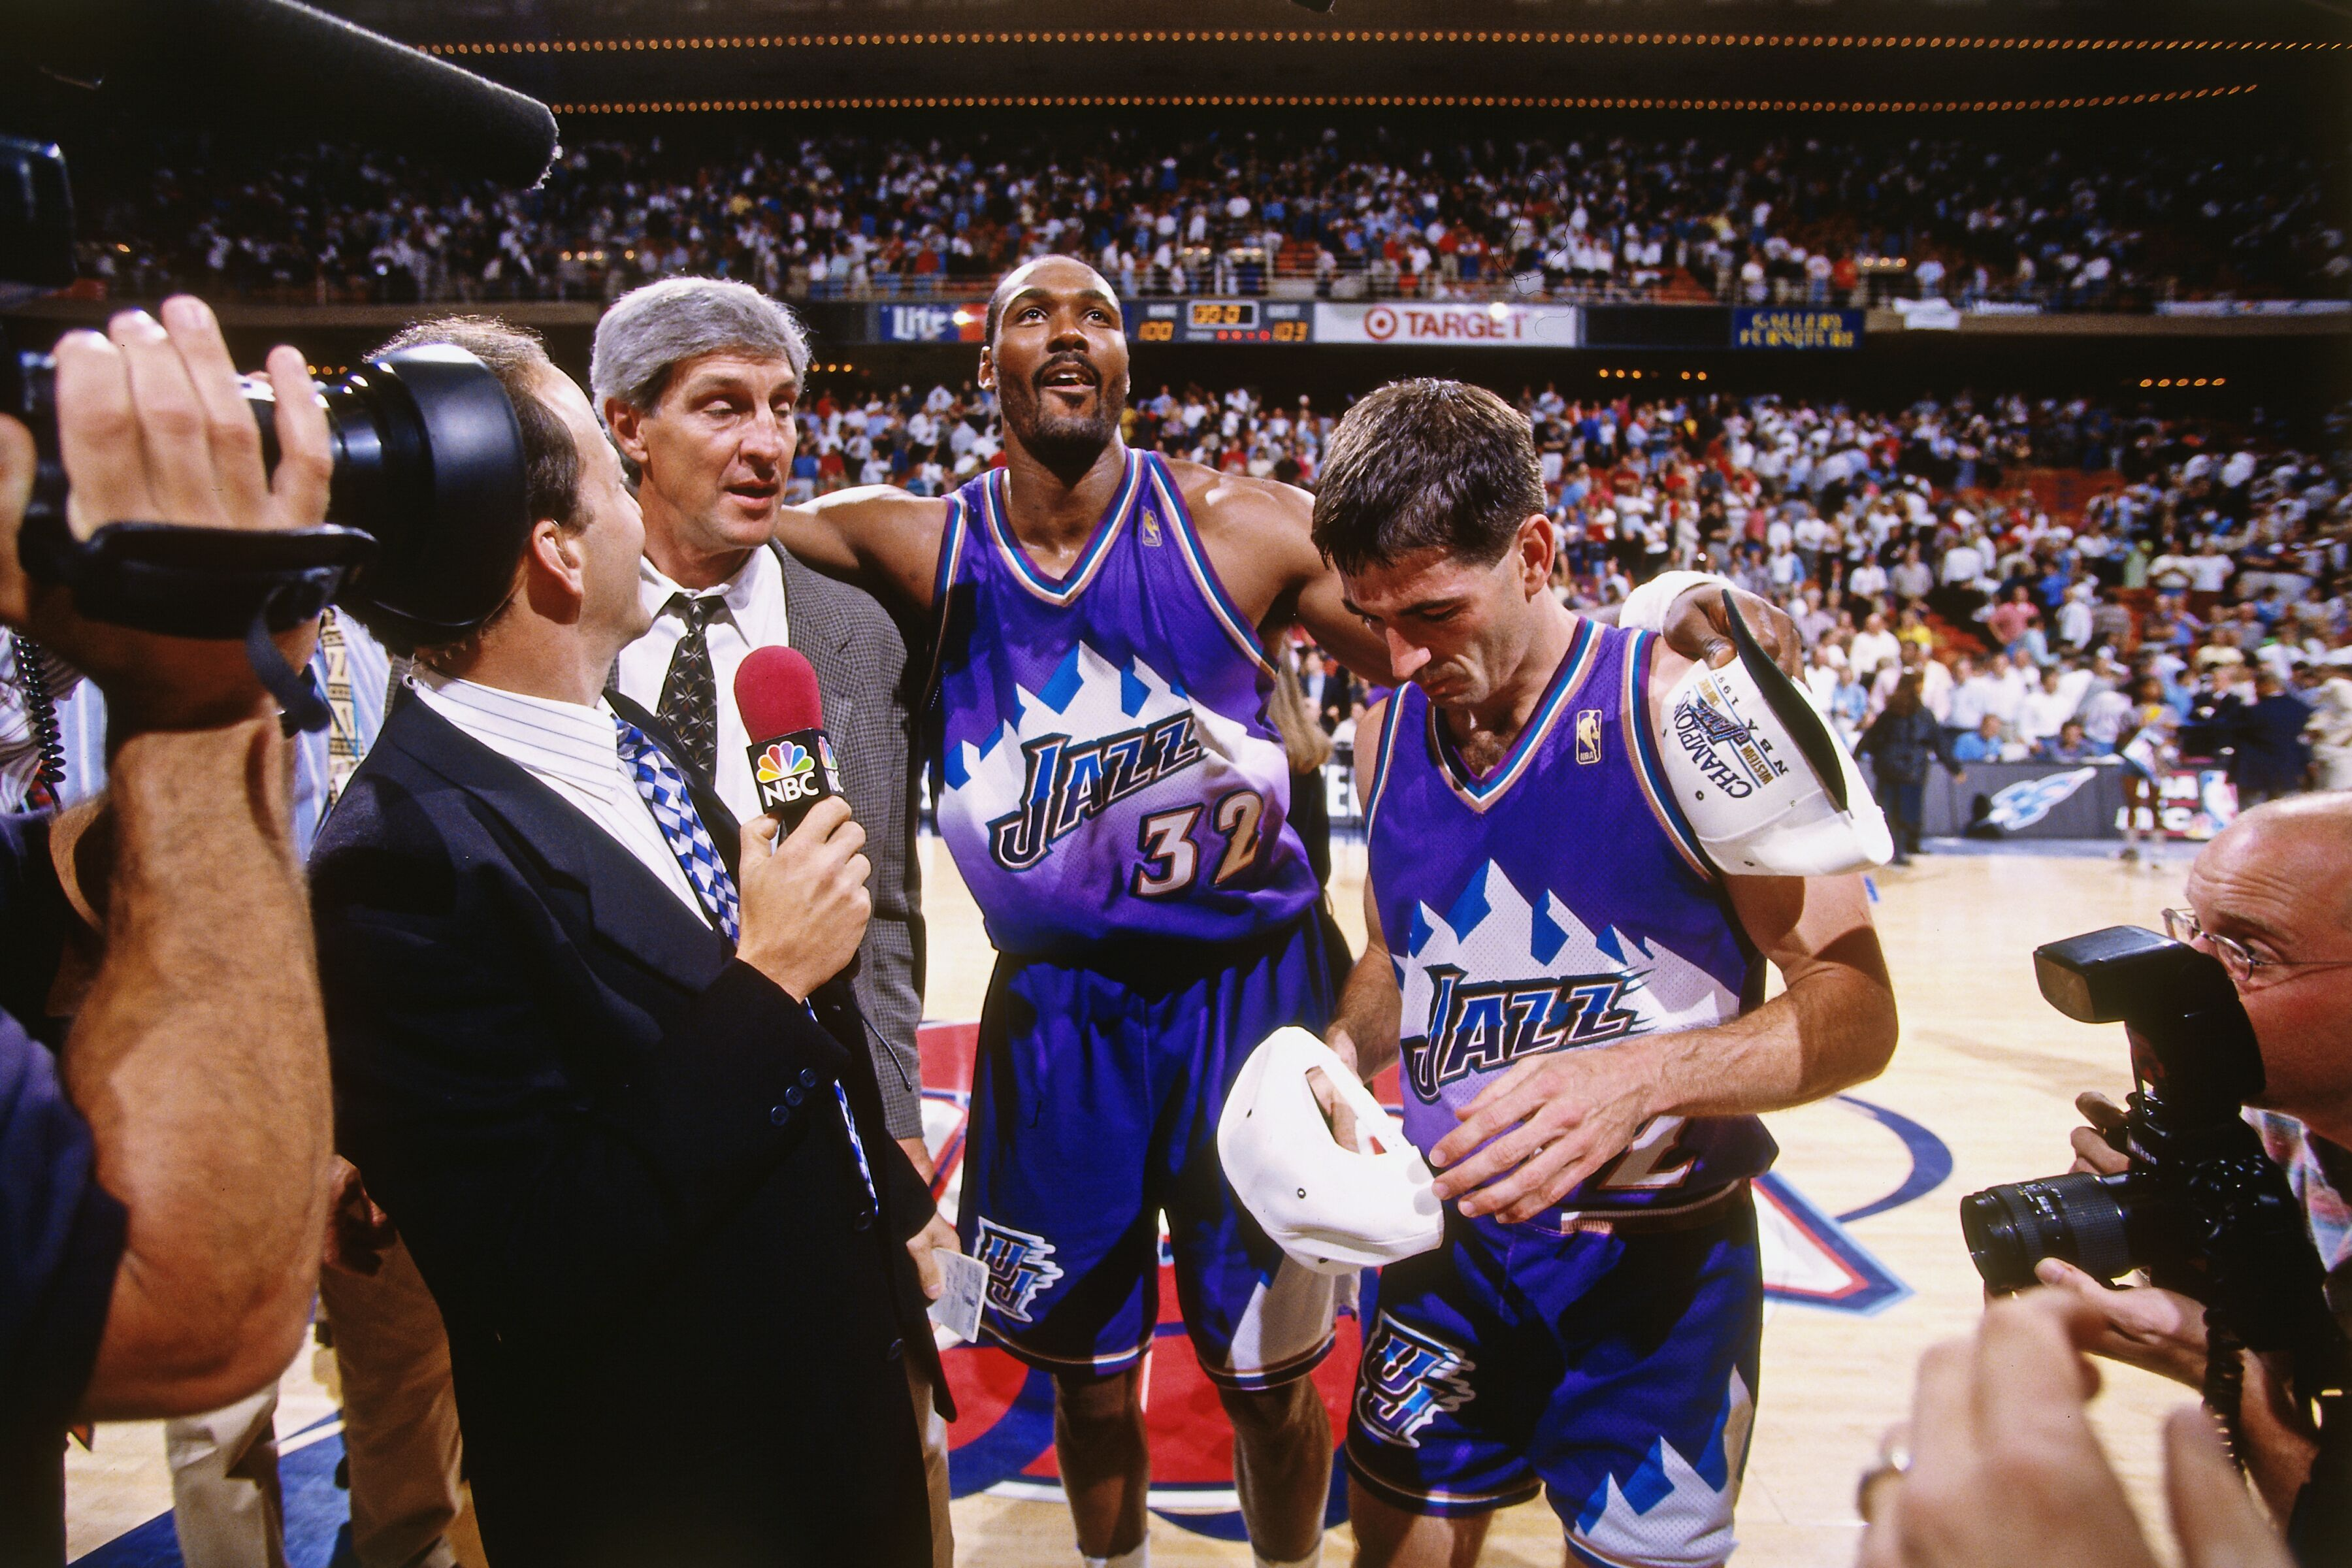 reputable site 192b9 c3e47 Utah Jazz: The purple mountain unis may be coming back (and ...